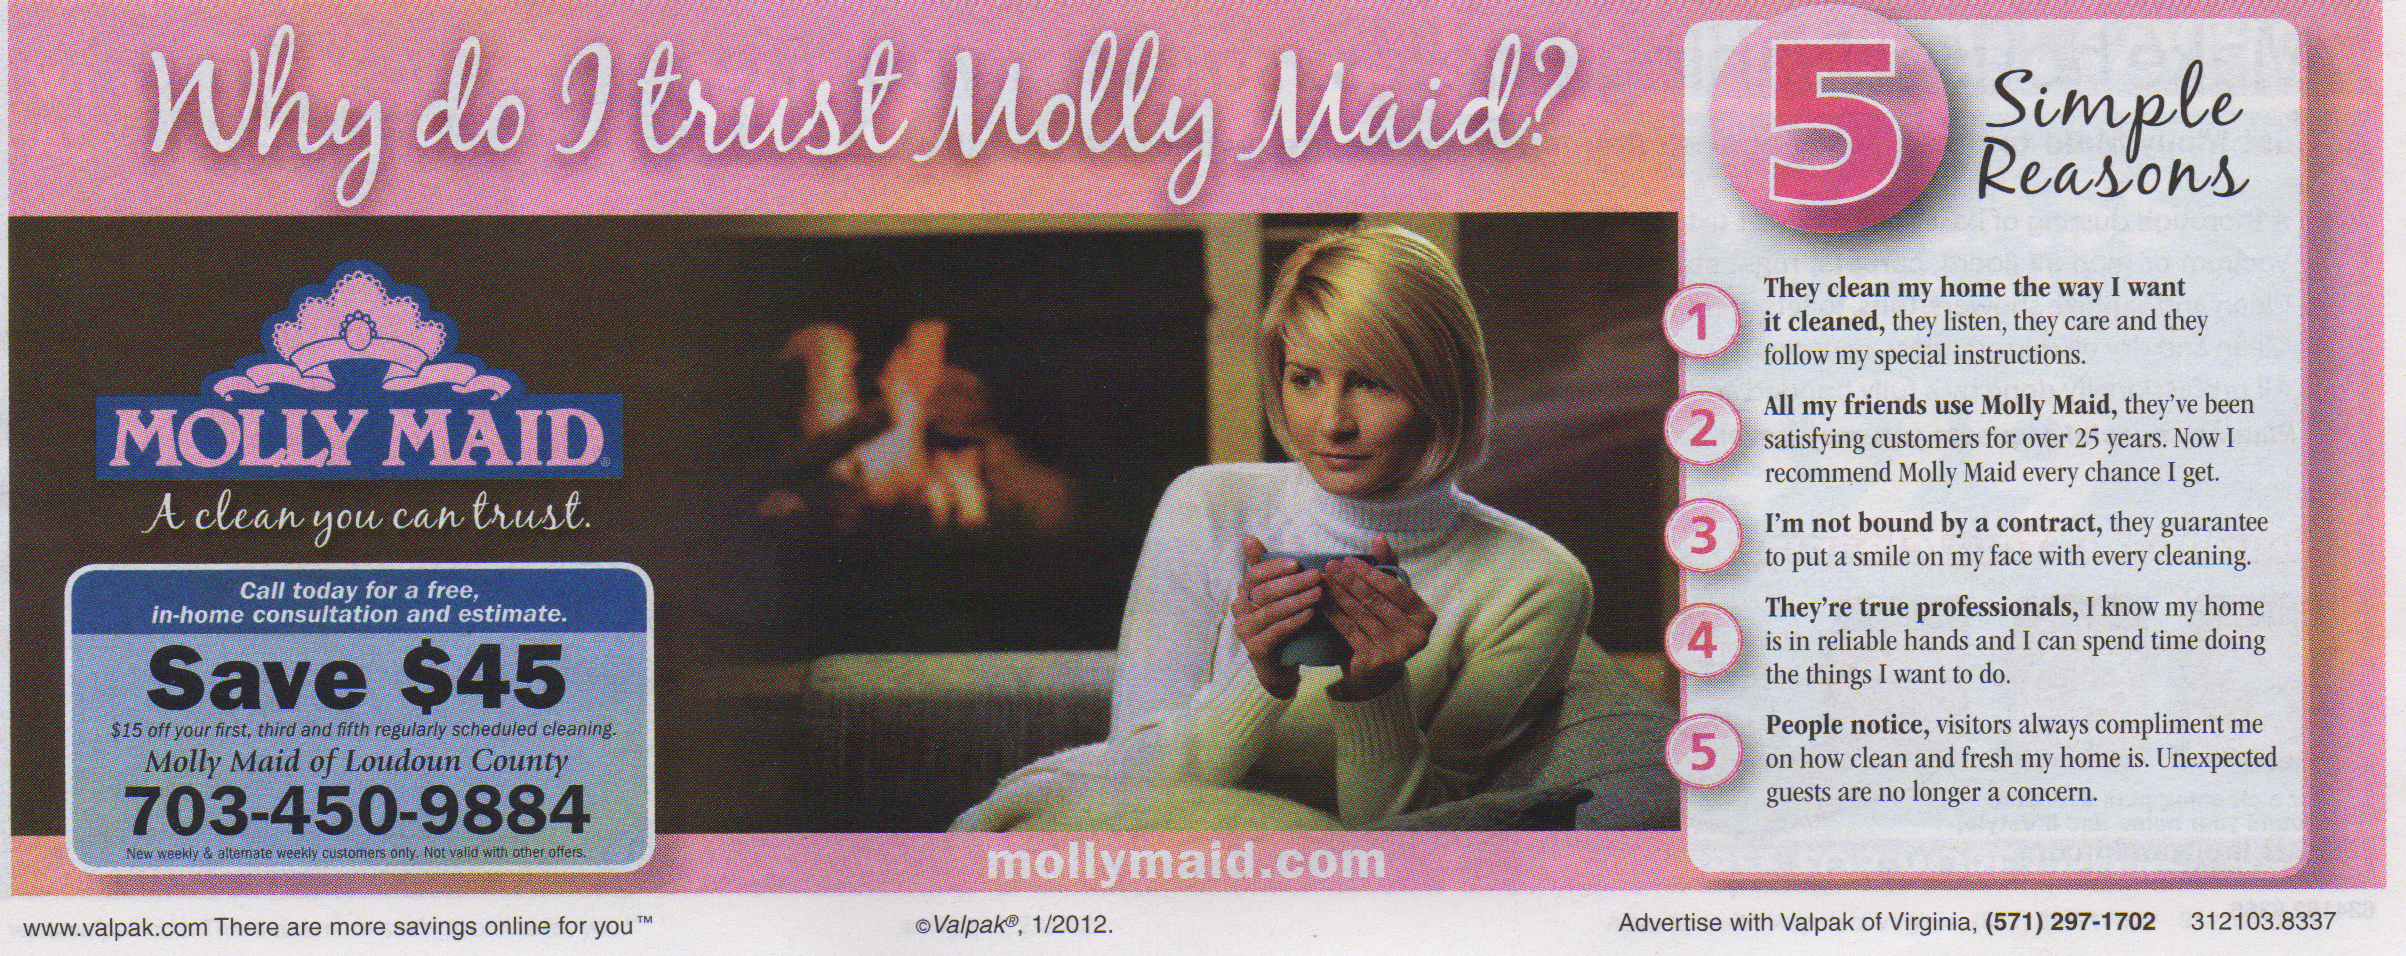 why to trust molly maid